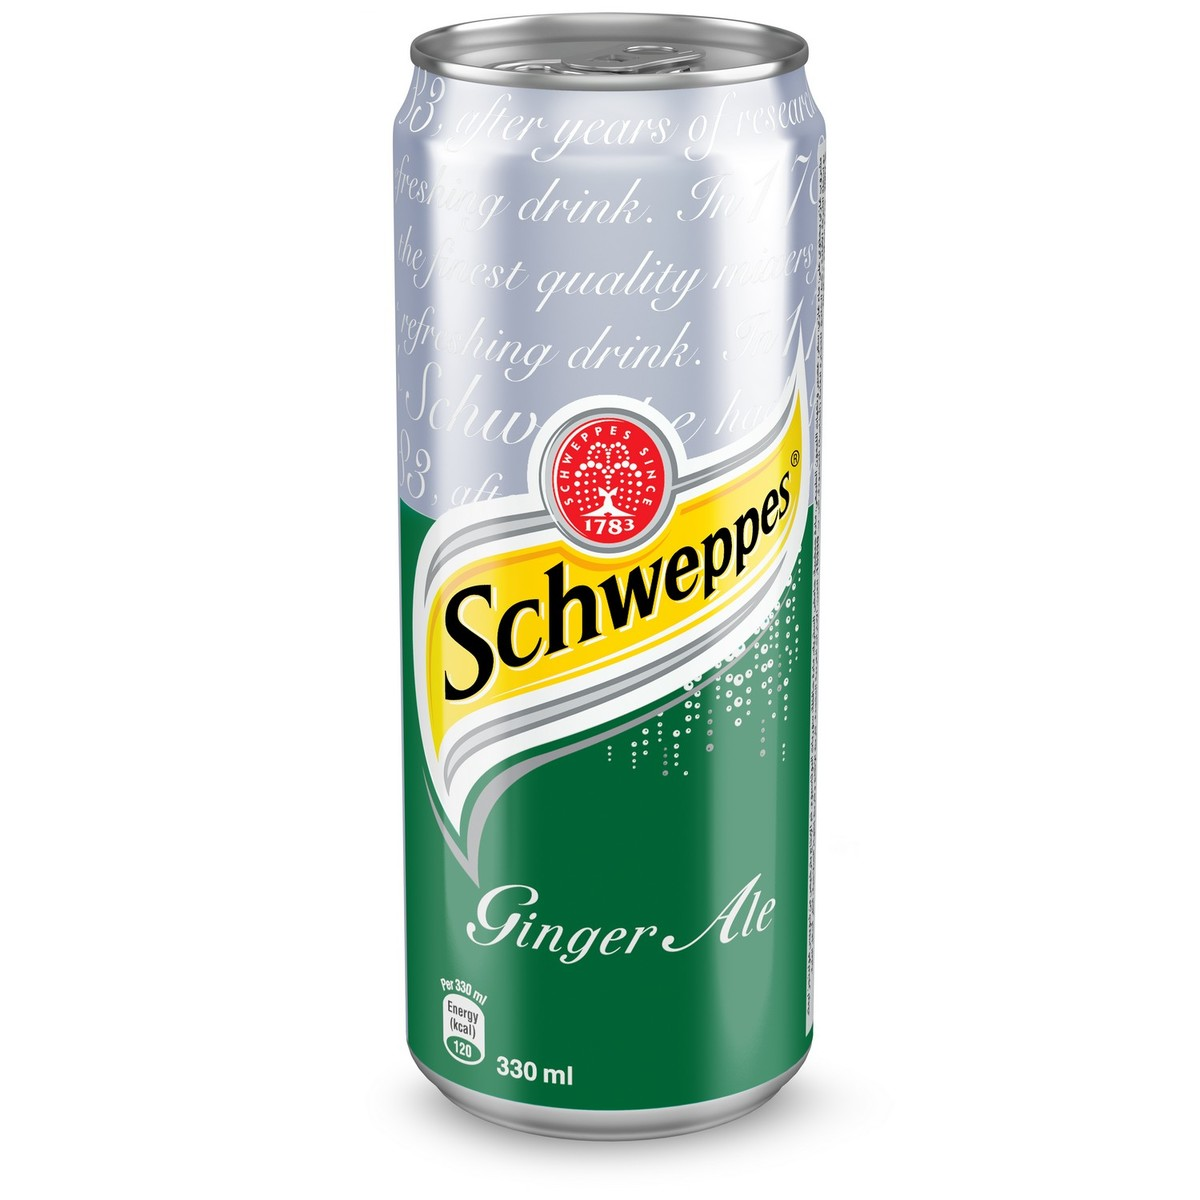 SCHWEPPERS GINGER ALE 330 ML - PCS